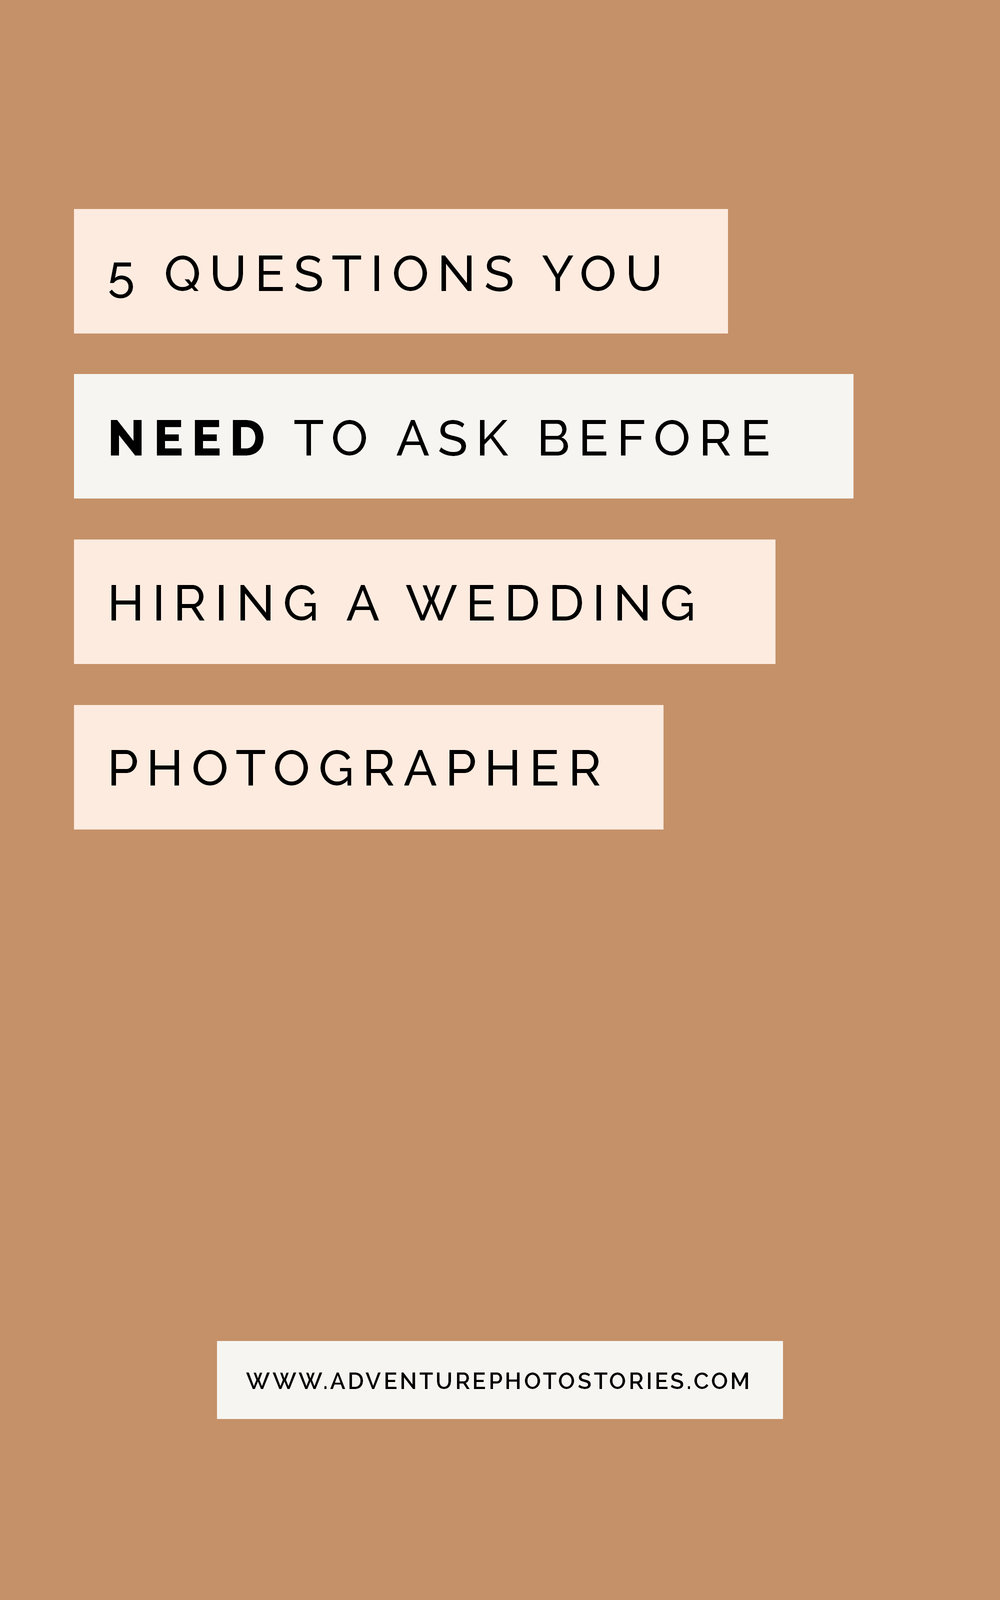 5 Questions You Need To Ask Before Hiring A Wedding Photographer